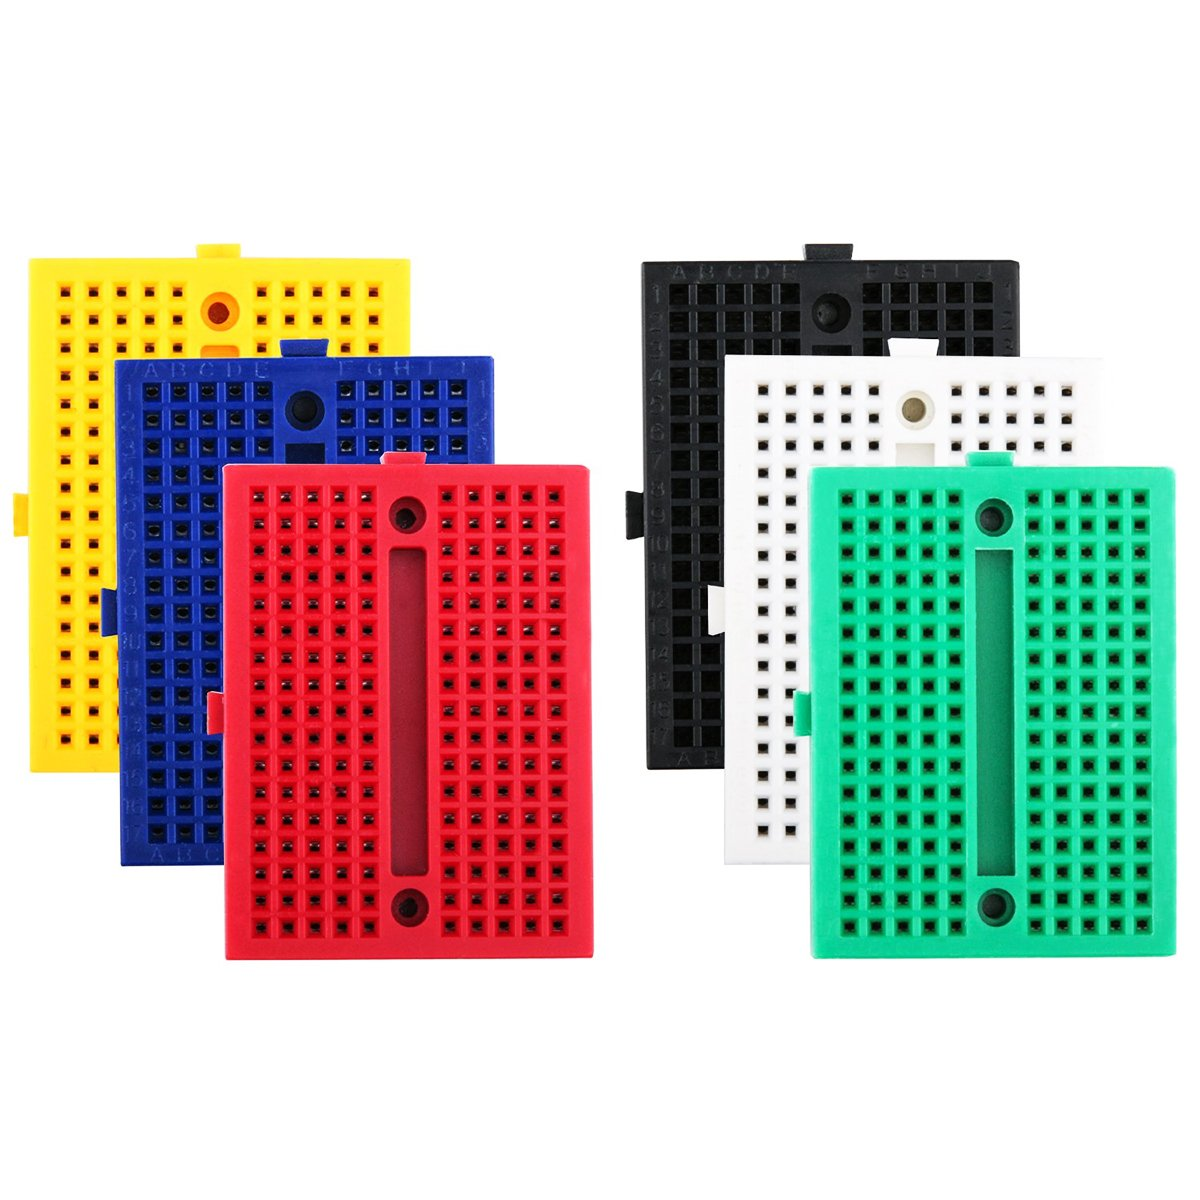 Electrely 6pcs 170 Tie Points Mini Breadboard Kit Experiment Solderless Breadboards Provide A Way Of Creating Circuit Without Board Self Adhesive